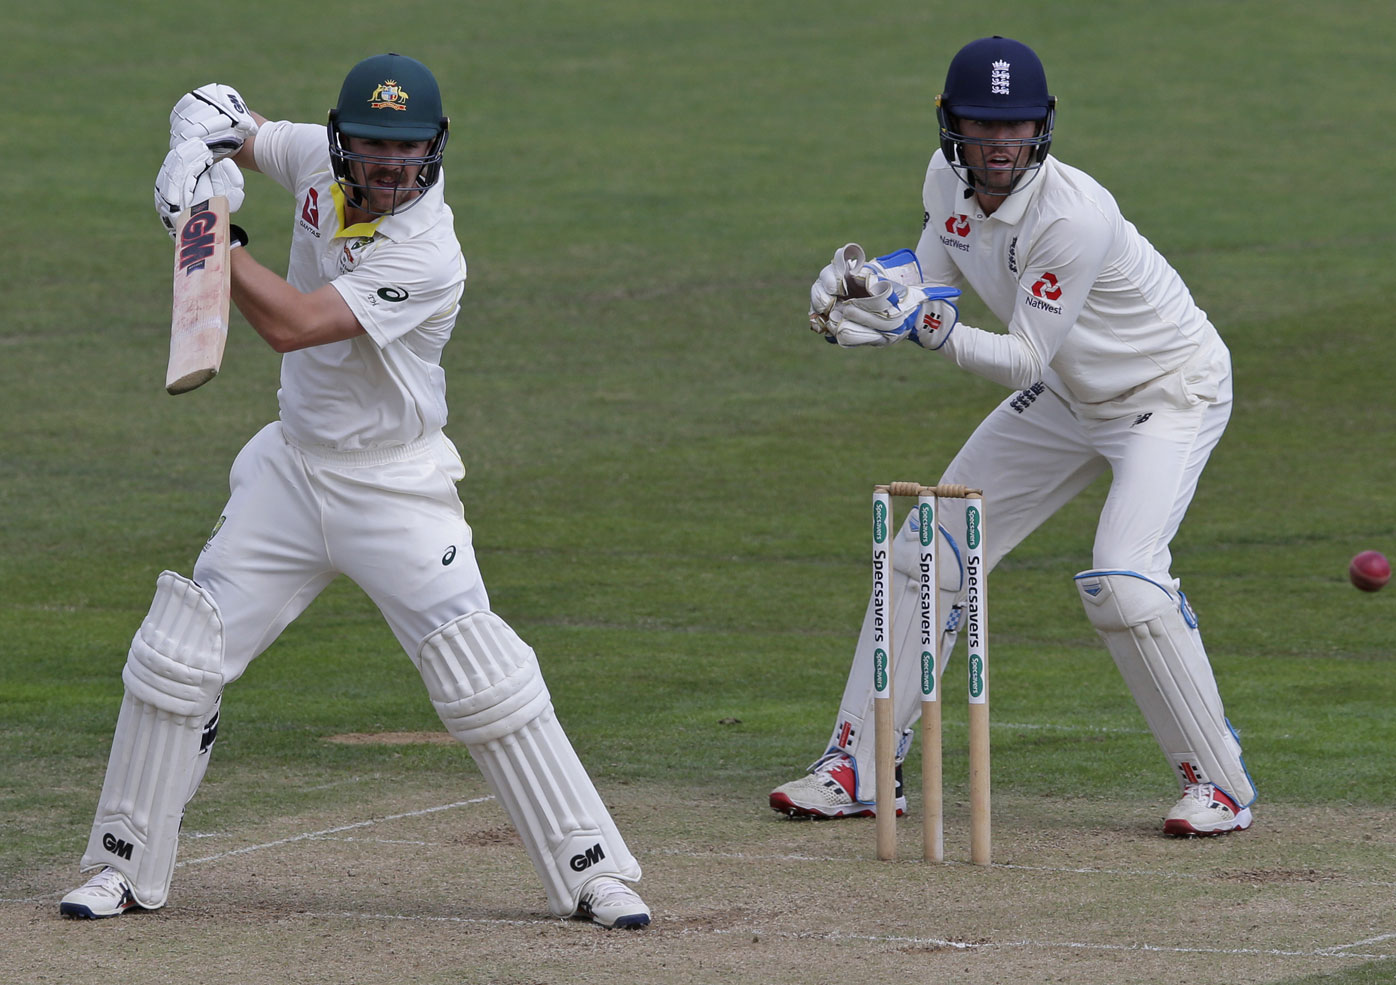 England brings CWC high to Ashes: Ponting